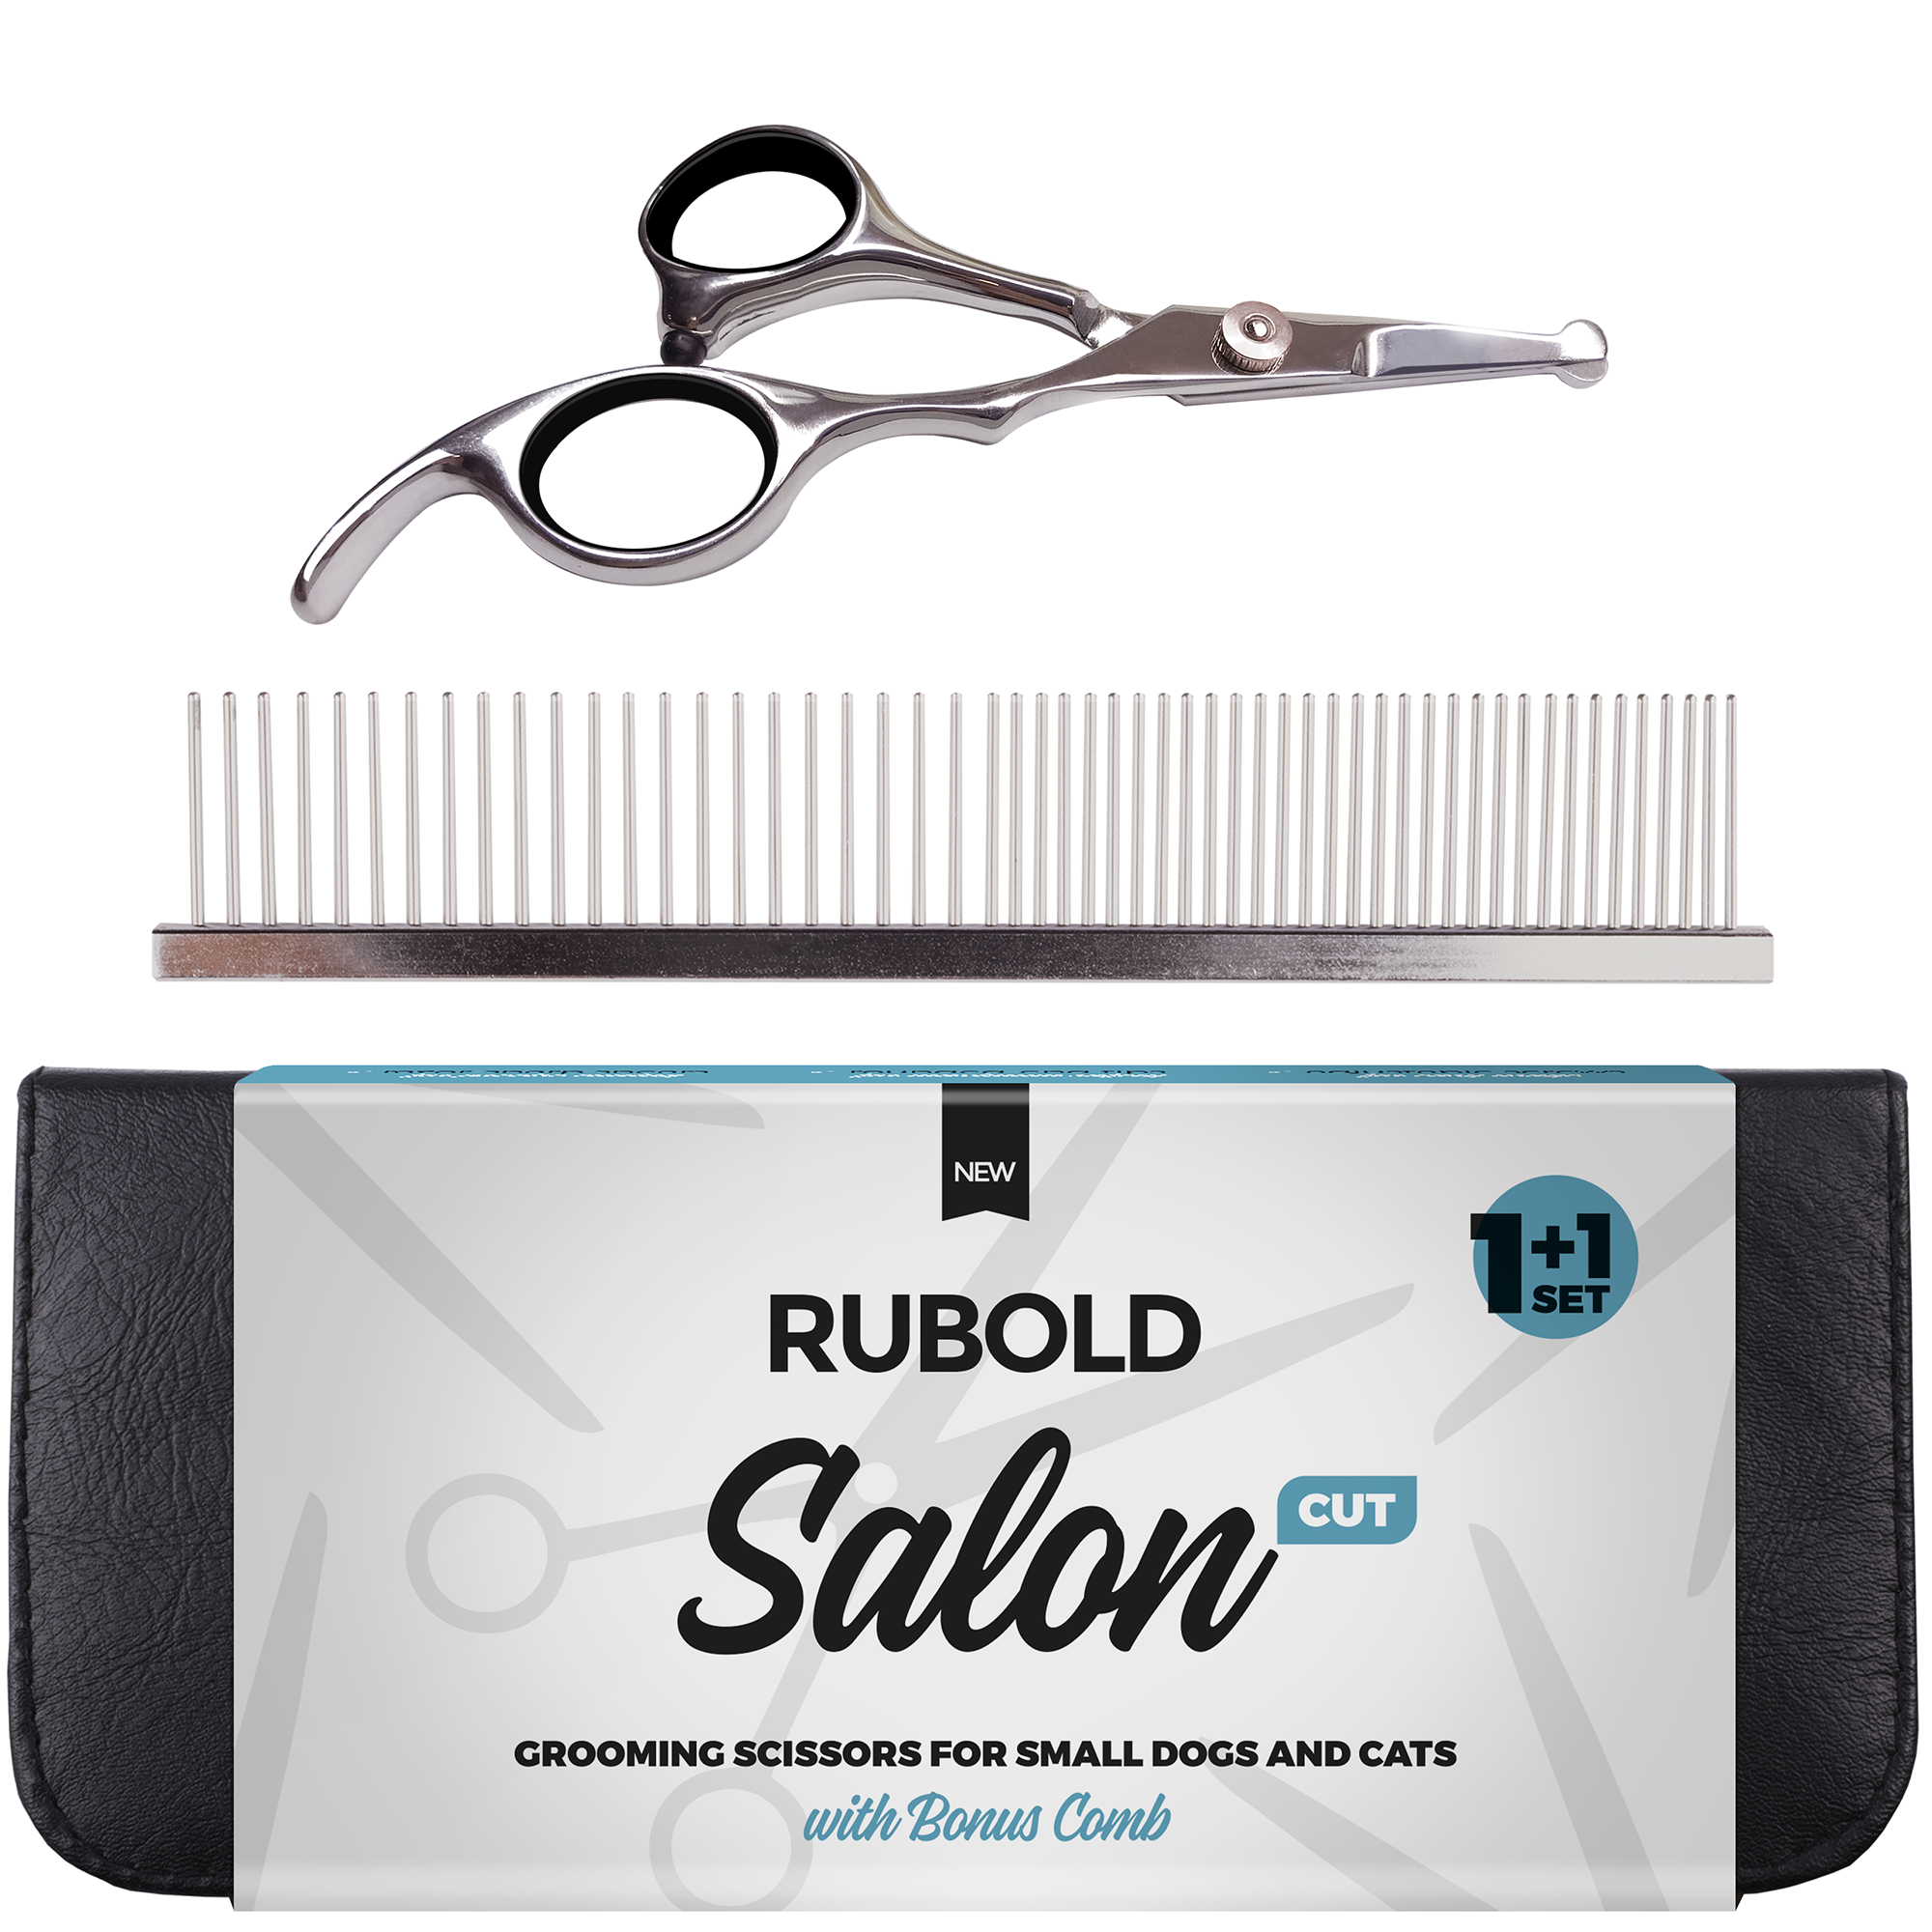 RUBOLD Salon Cut 1+1 Grooming Scissors Set - dog grooming tools and dog care products